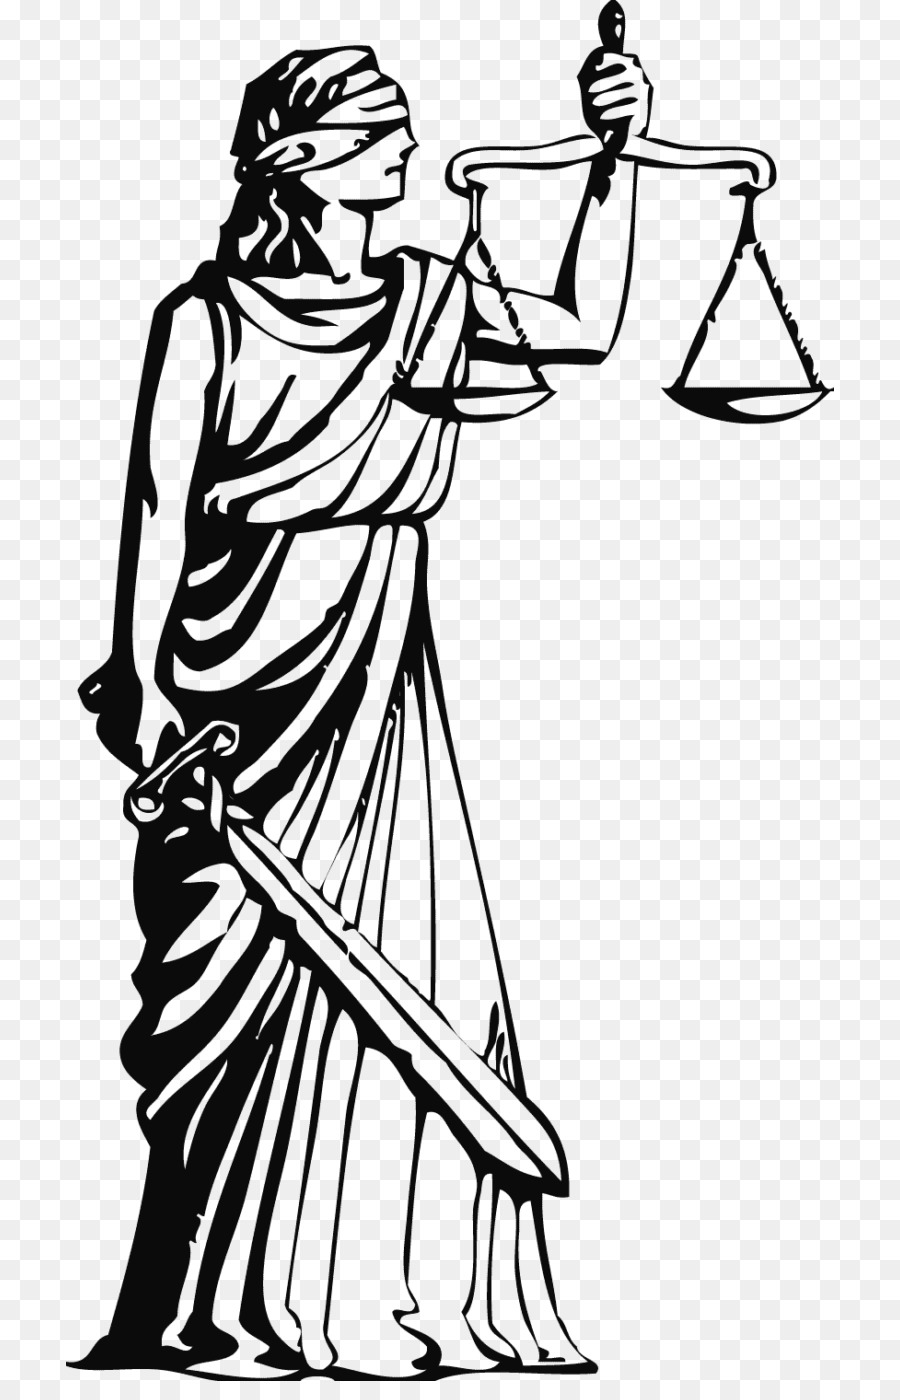 Lady justice clipart jpg black and white Lady Justice Clothing png download - 768*1381 - Free ... jpg black and white